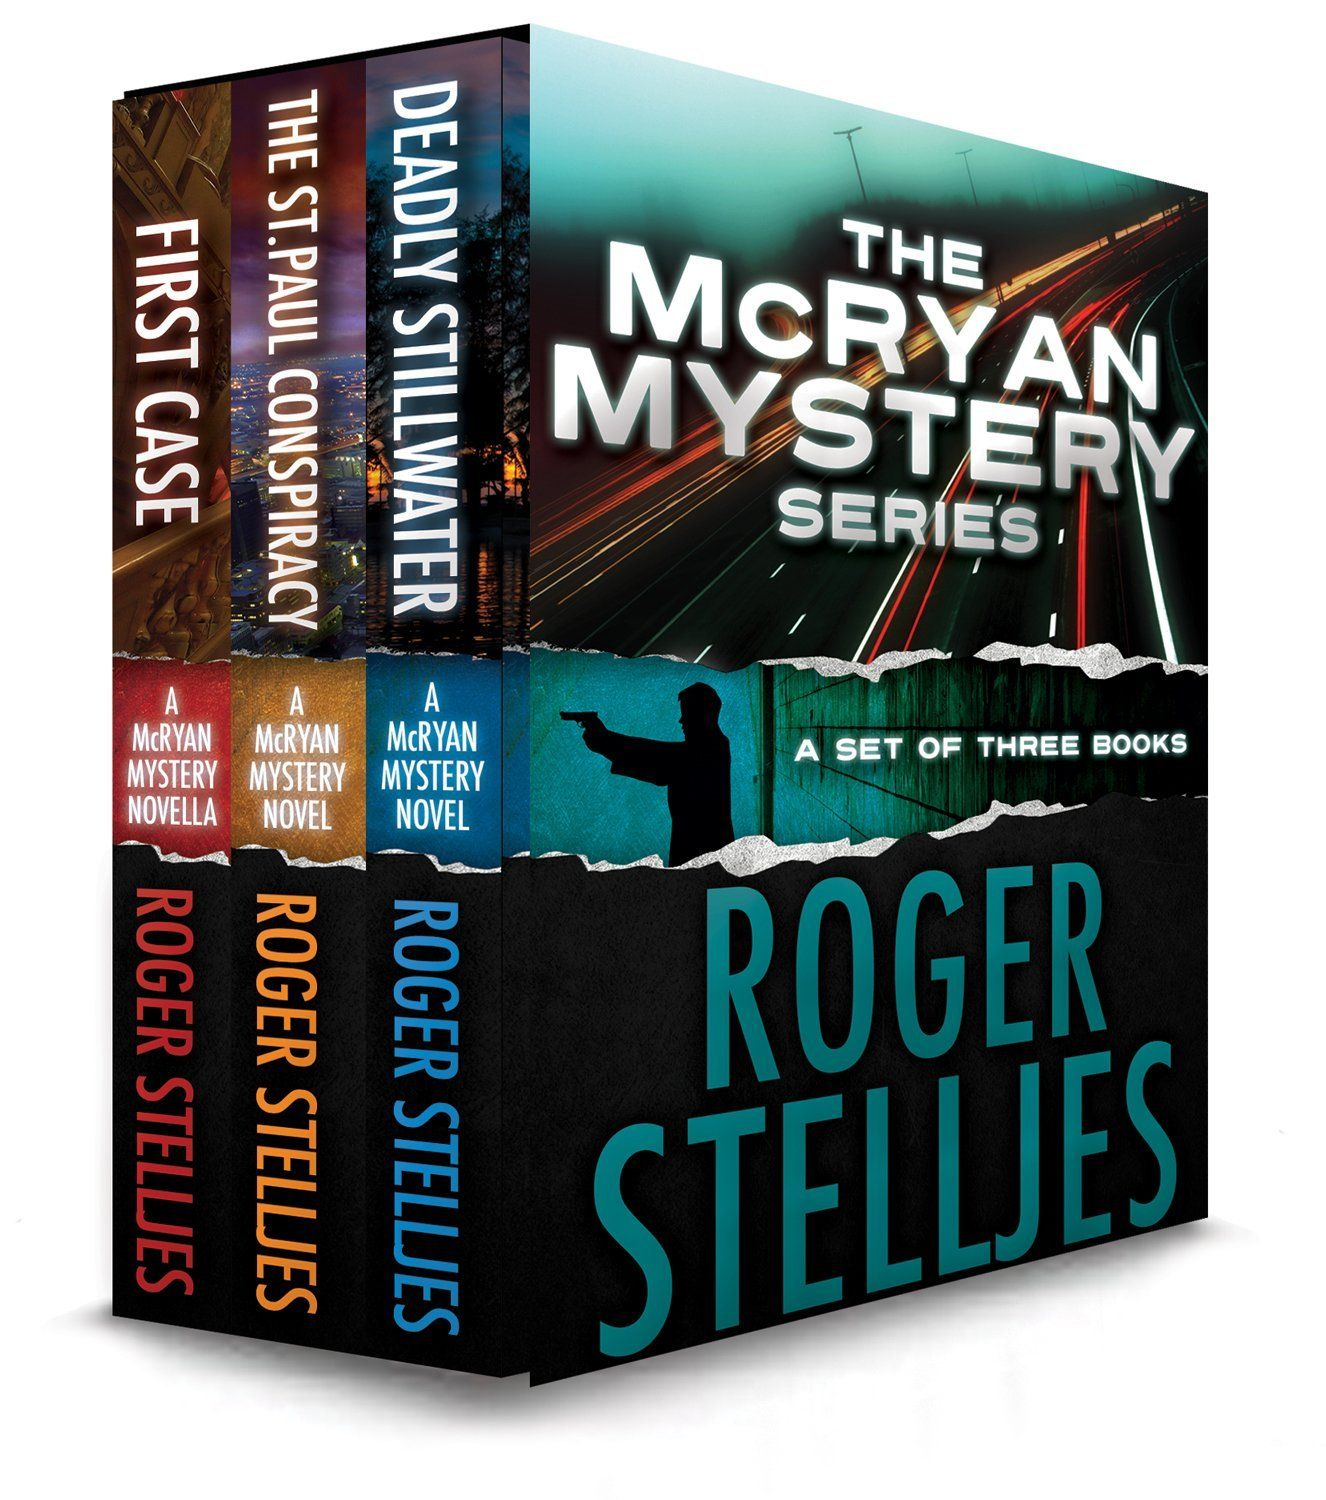 First Deadly Conspiracy Box Set Mcryan Mystery Series Books 1 3 Kindle Edition By Roger Stelljes Mystery Thril Mystery Thriller Mystery Series Mystery